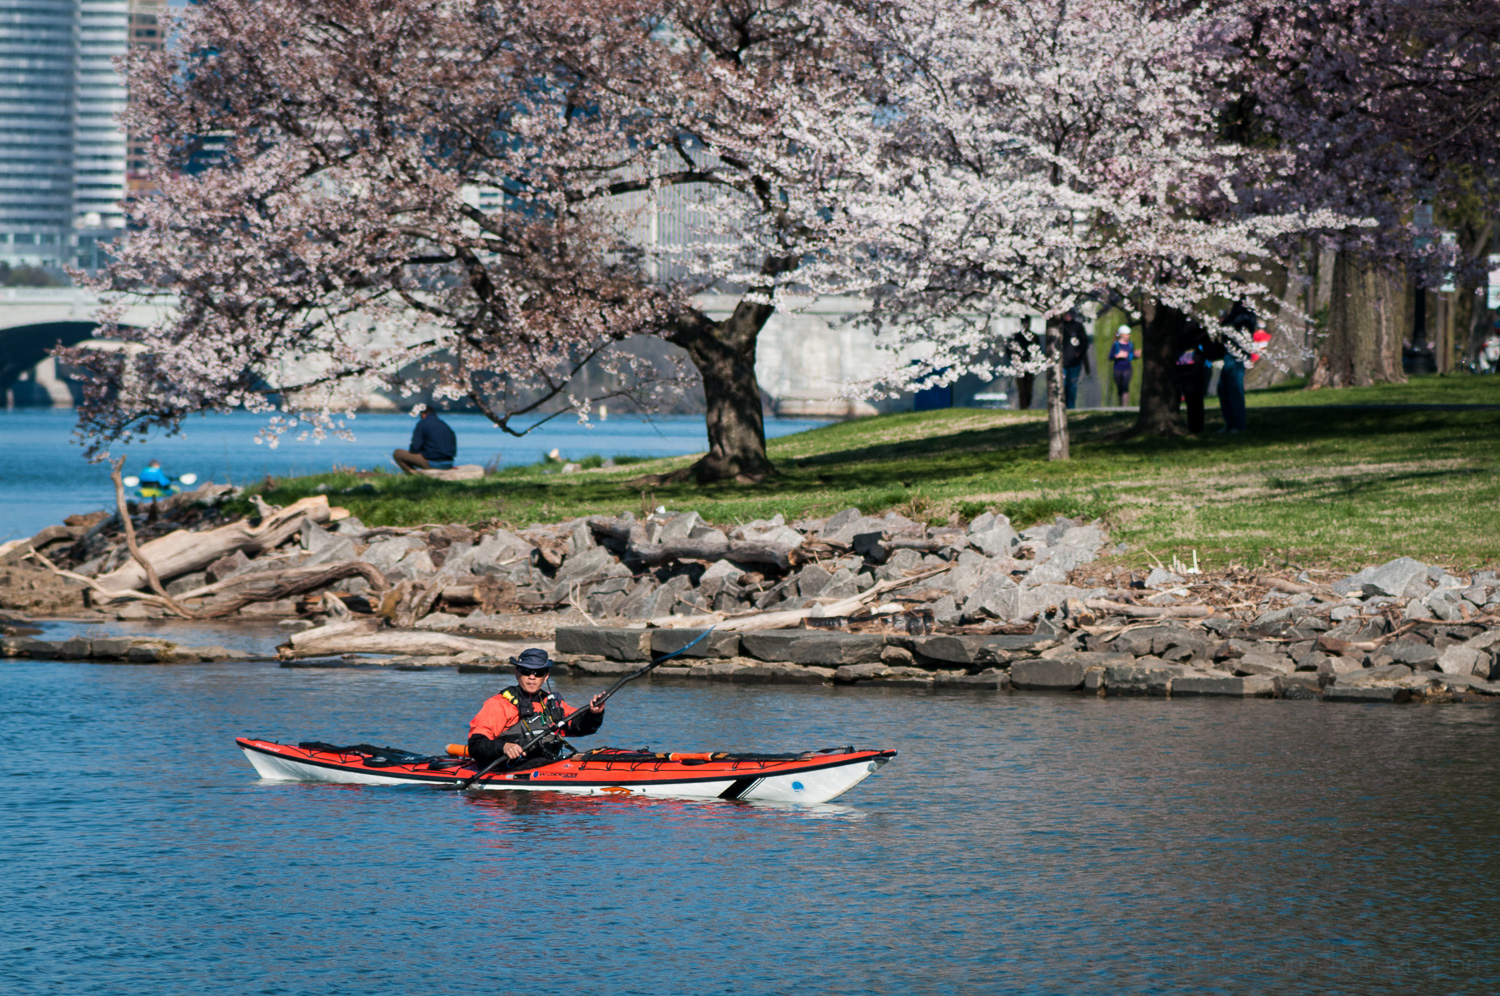 Kayaker, and photographer, in Potomac River just outside tidal basin, cherry tree in the background.